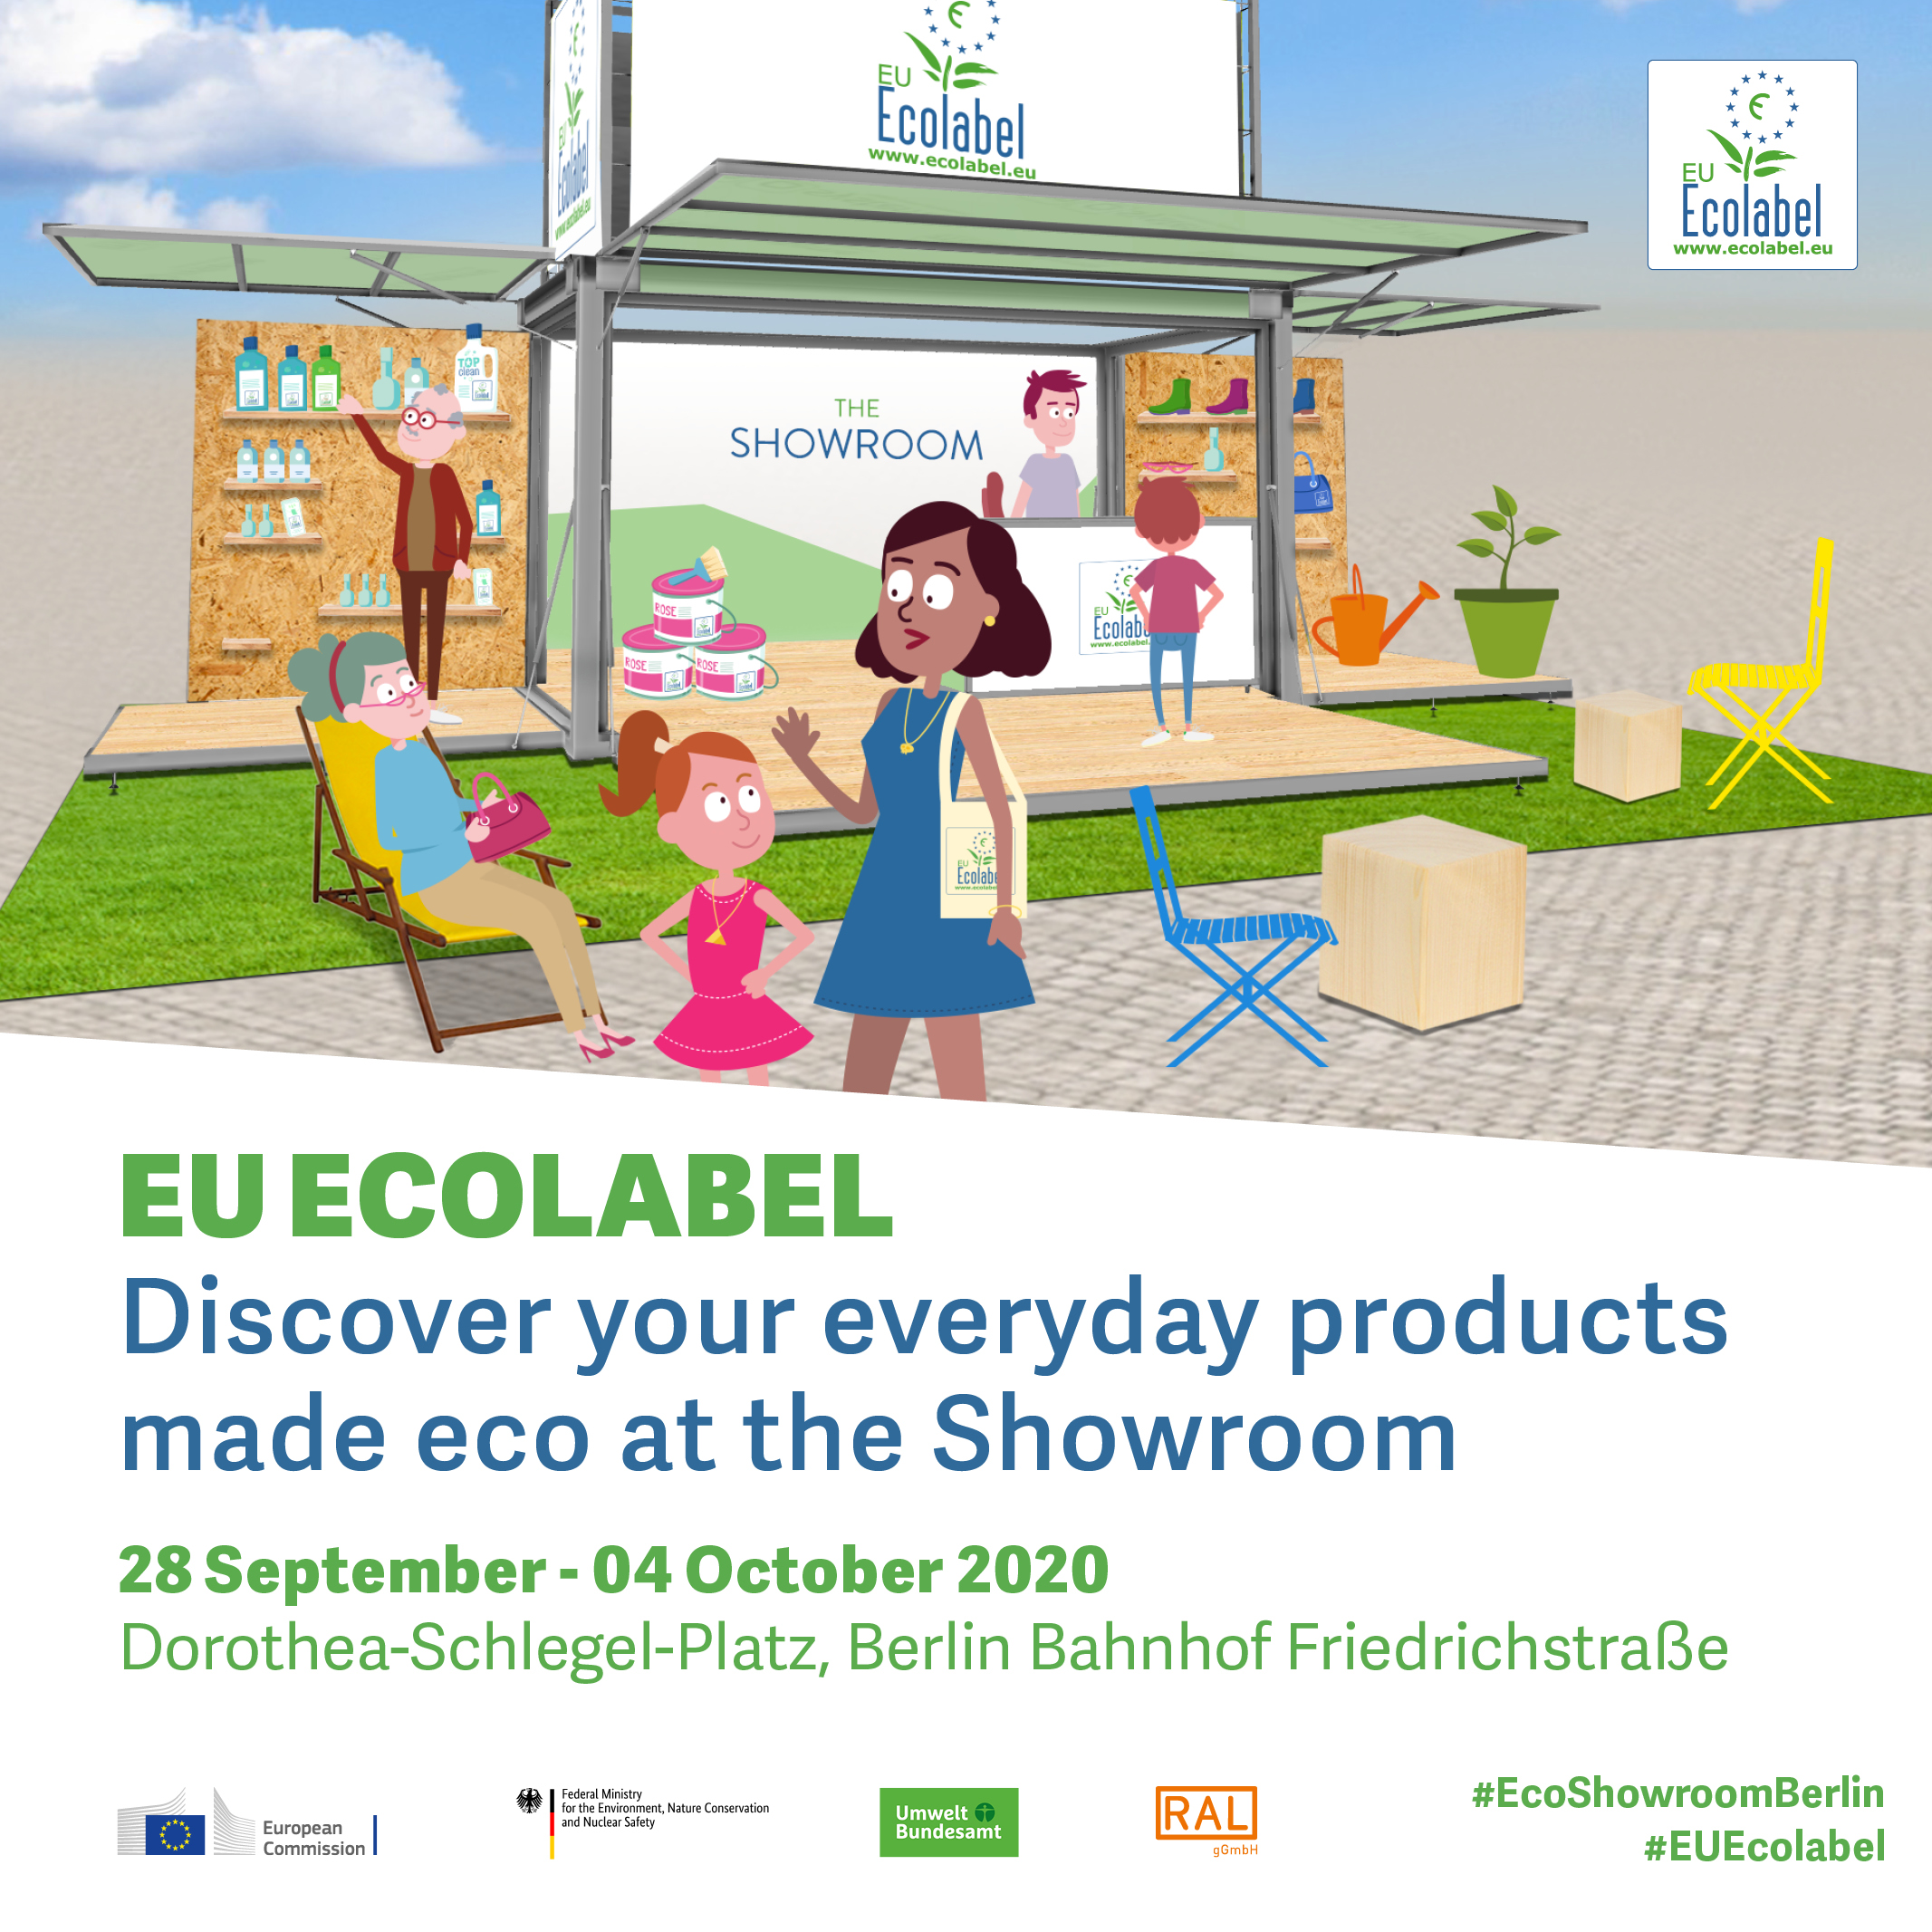 Join DWC at the Ecolabel Showroom in Berlin